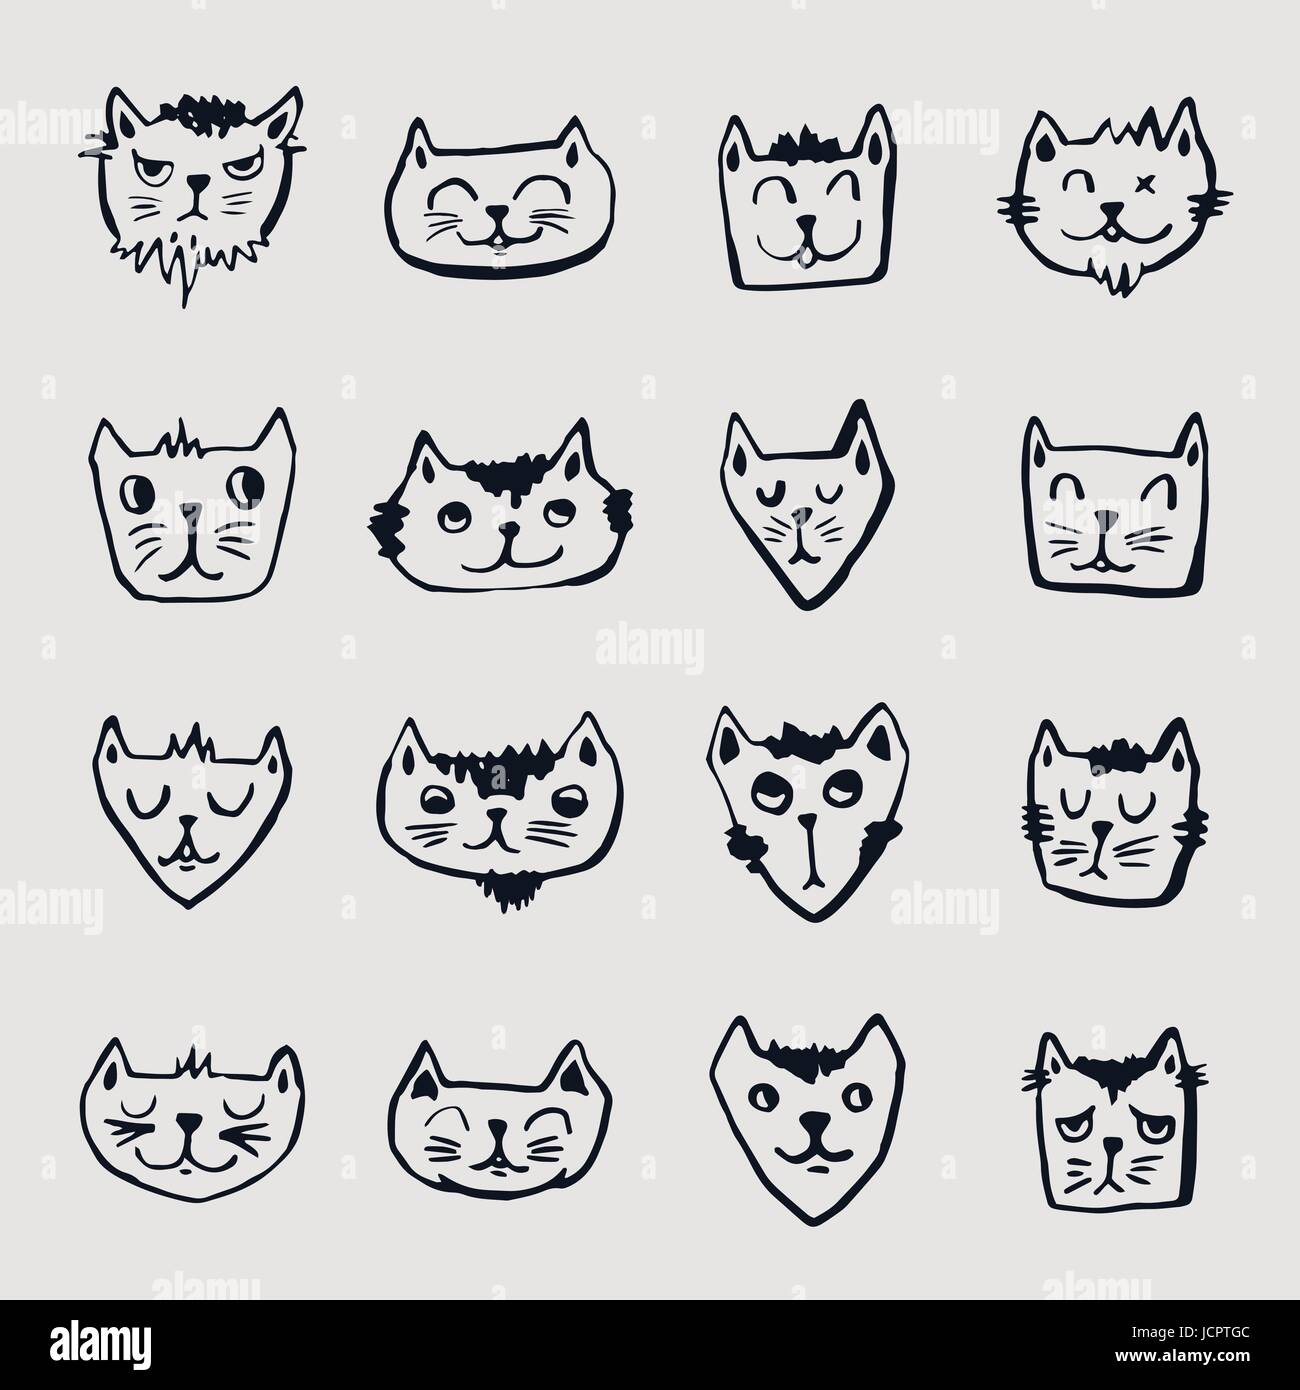 Vector icon set of cats - Stock Vector